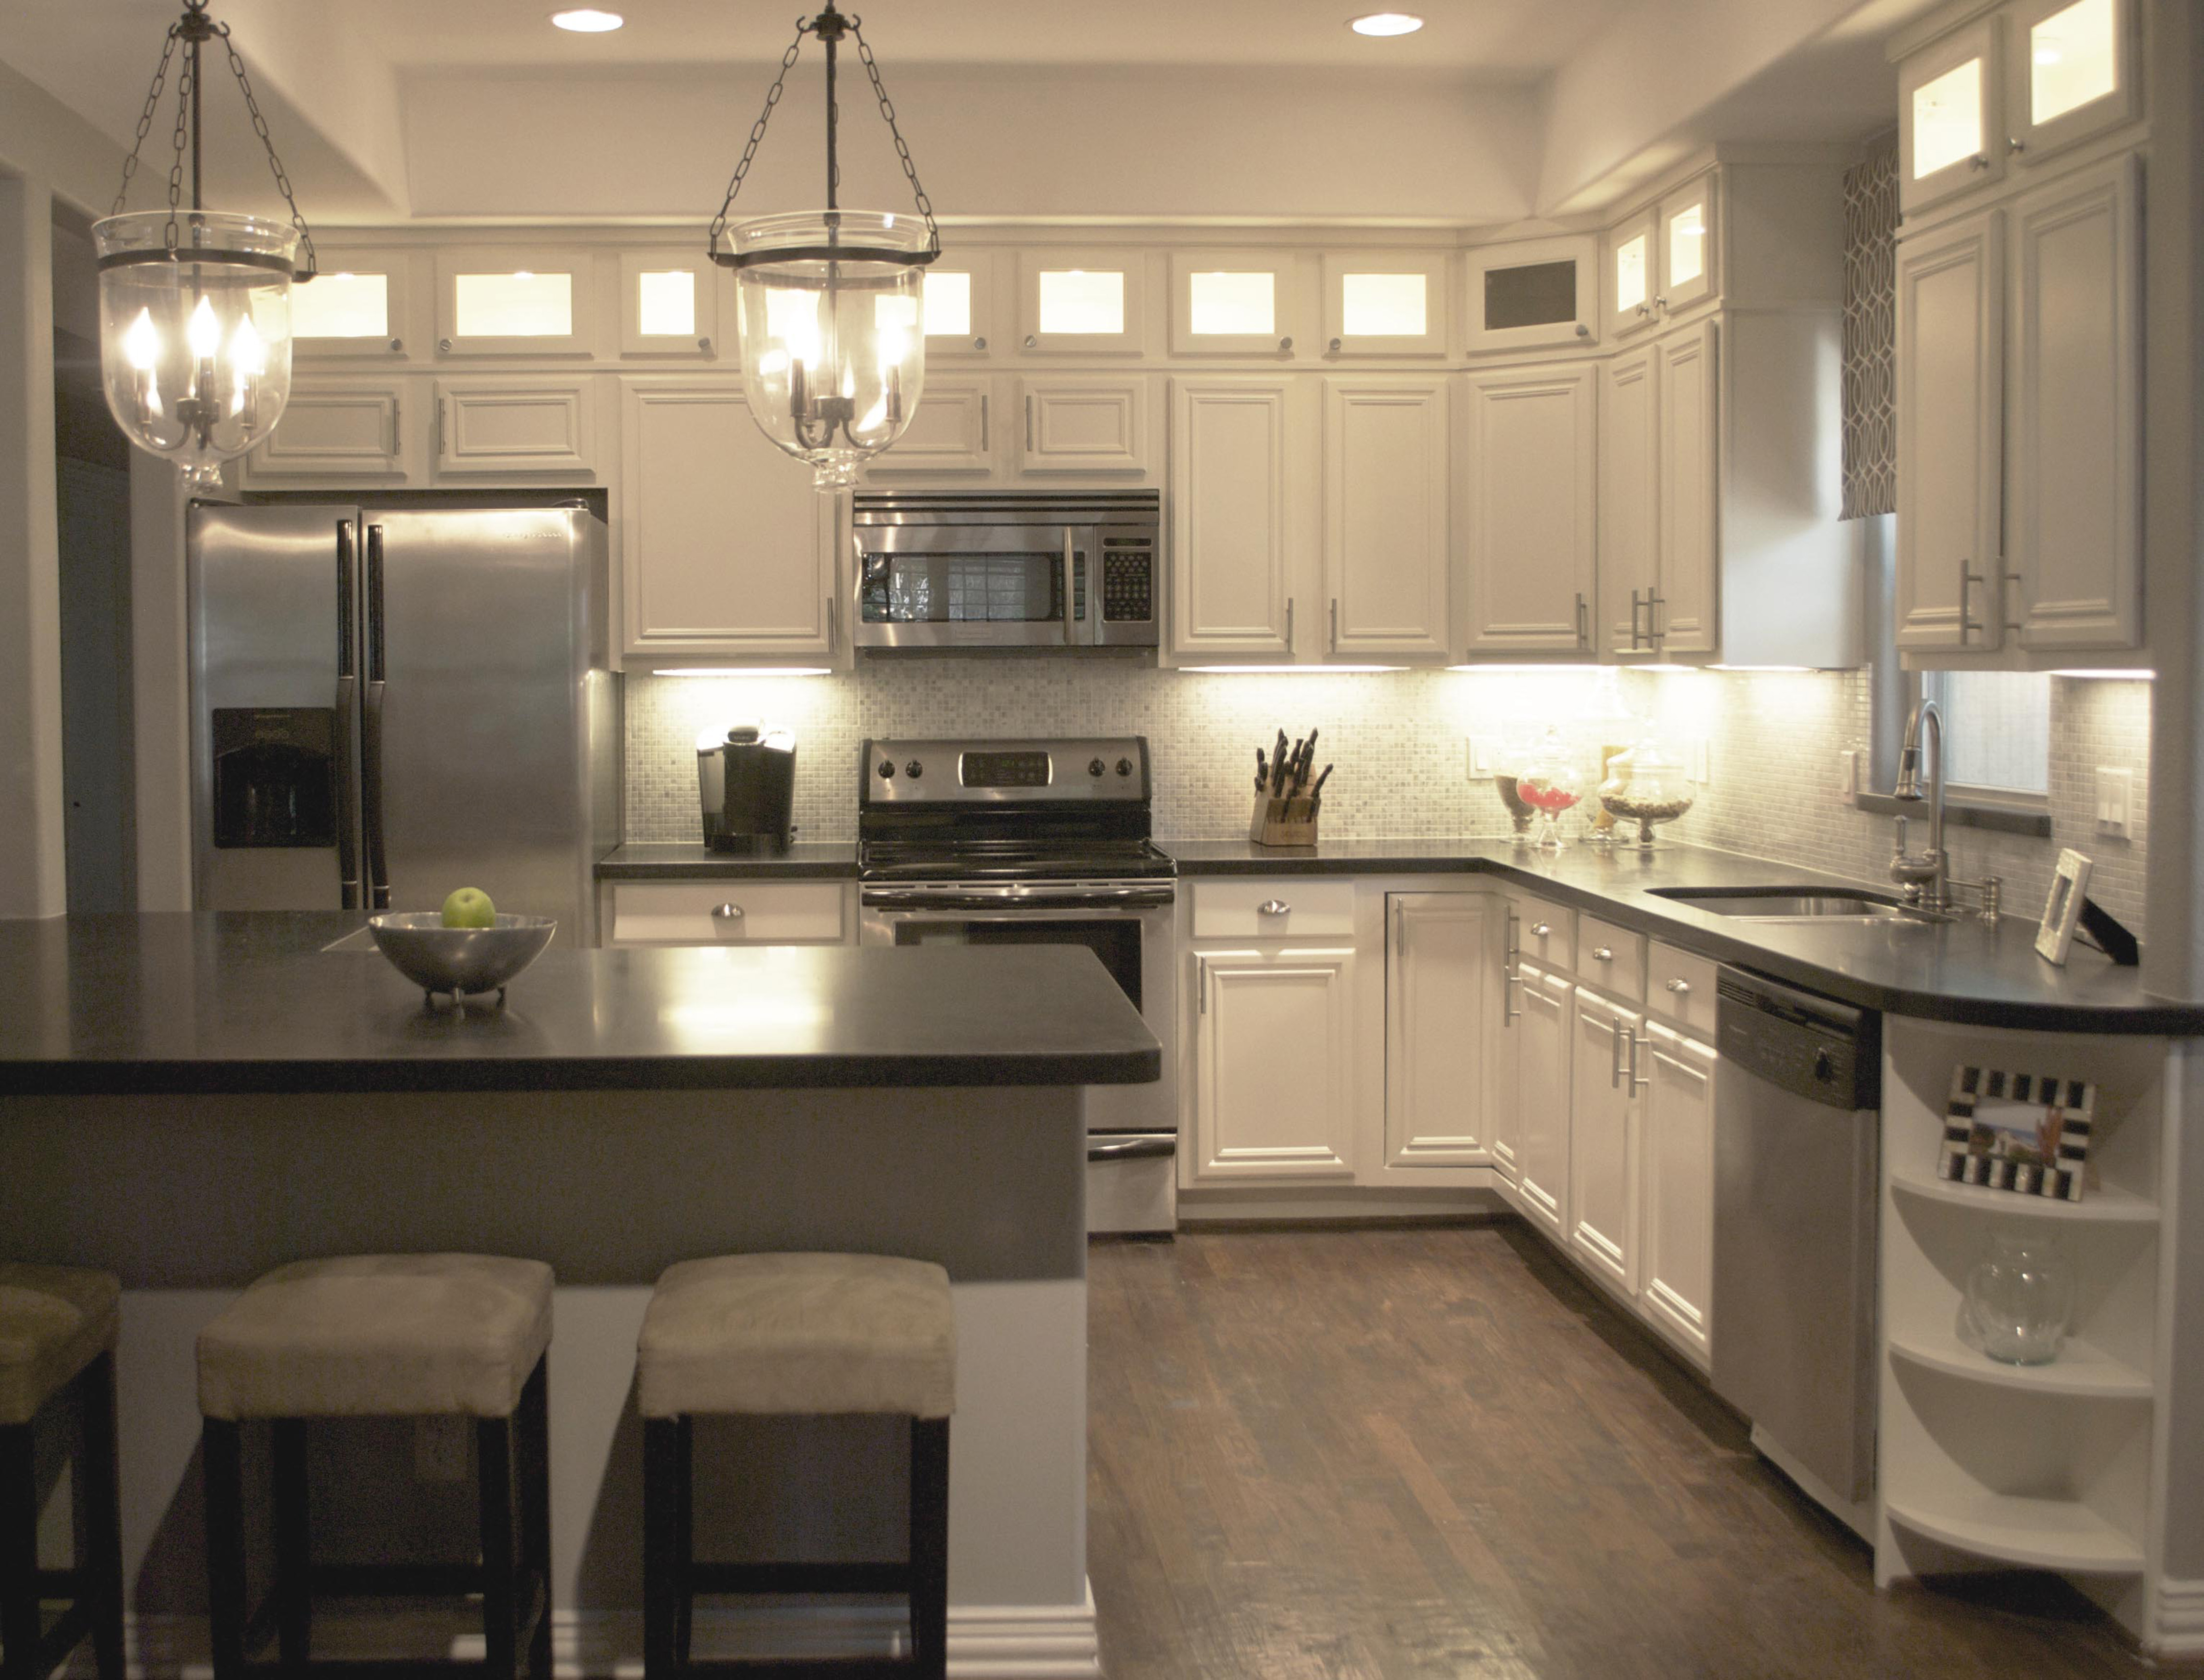 Northern valley construction kitchen remodeling fargo for Kitchen and remodeling